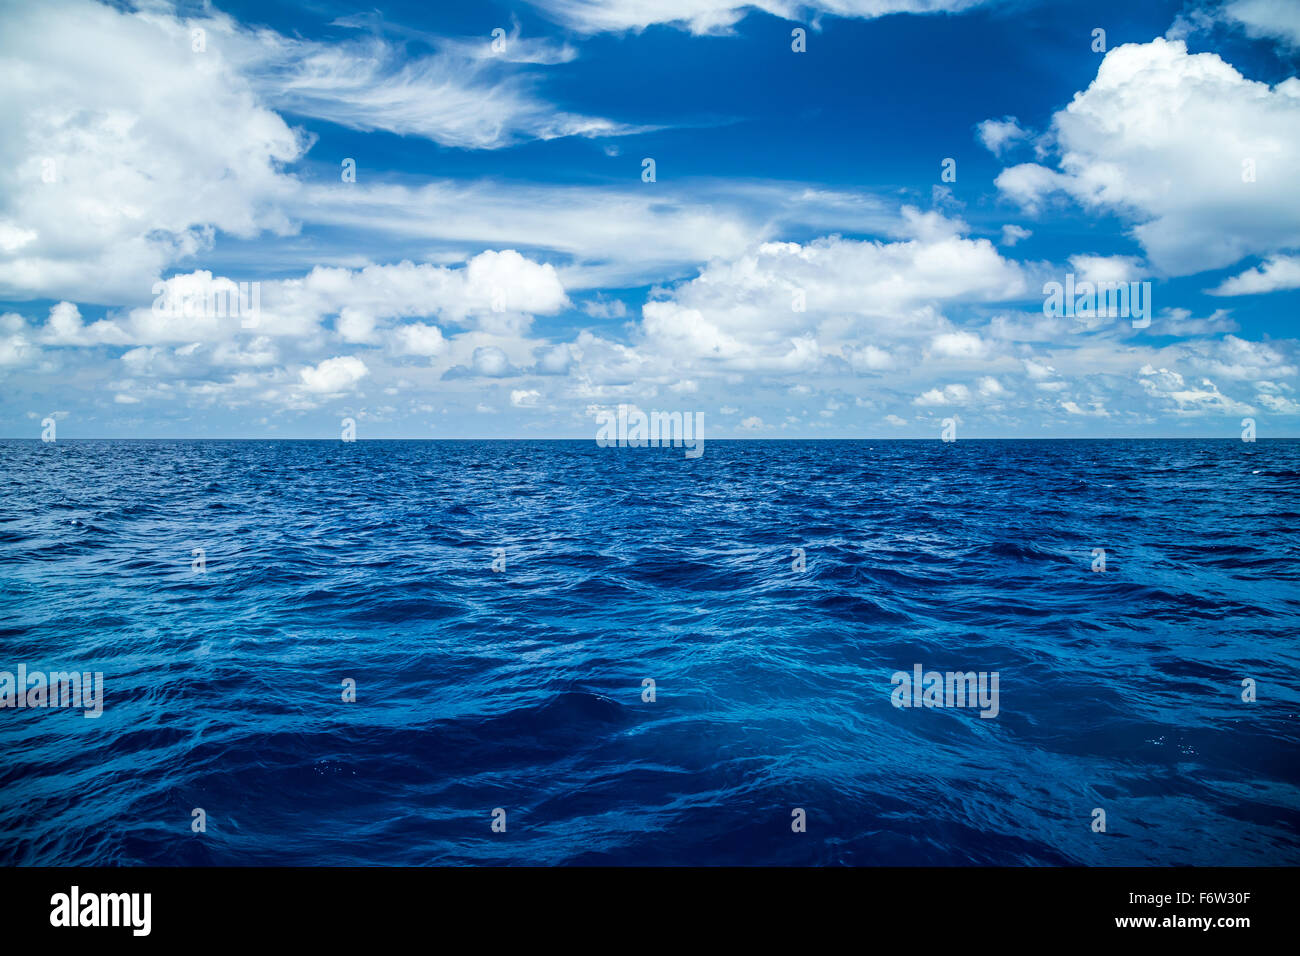 view on the deep blue ocean in front of blue cloudy sky - Stock Image